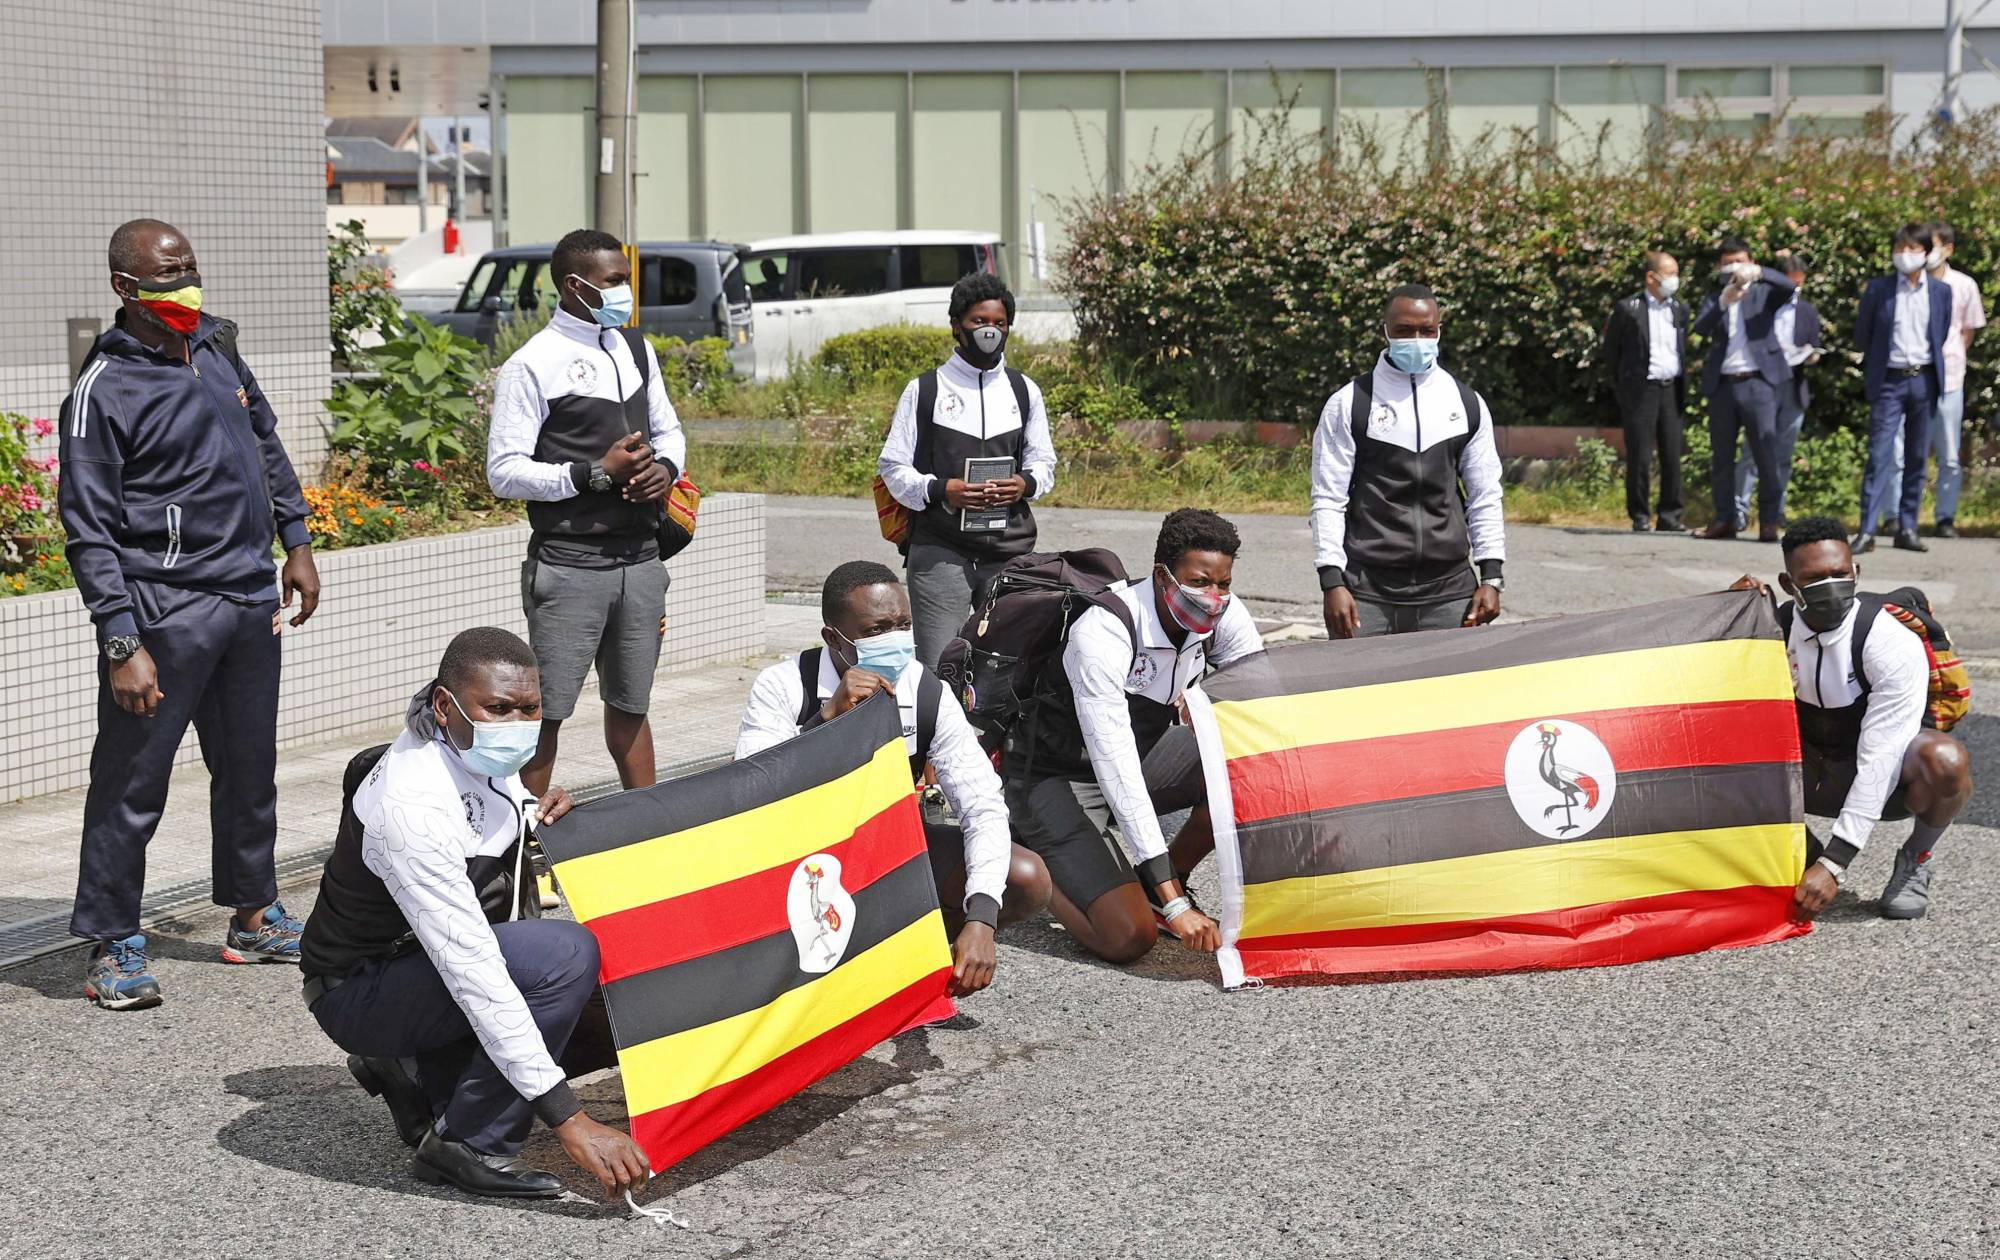 A group of Ugandan athletes arriving in Japan for the Tokyo Olympics are pictured in Izumisano, Osaka Prefecture, on Sunday.   KYODO